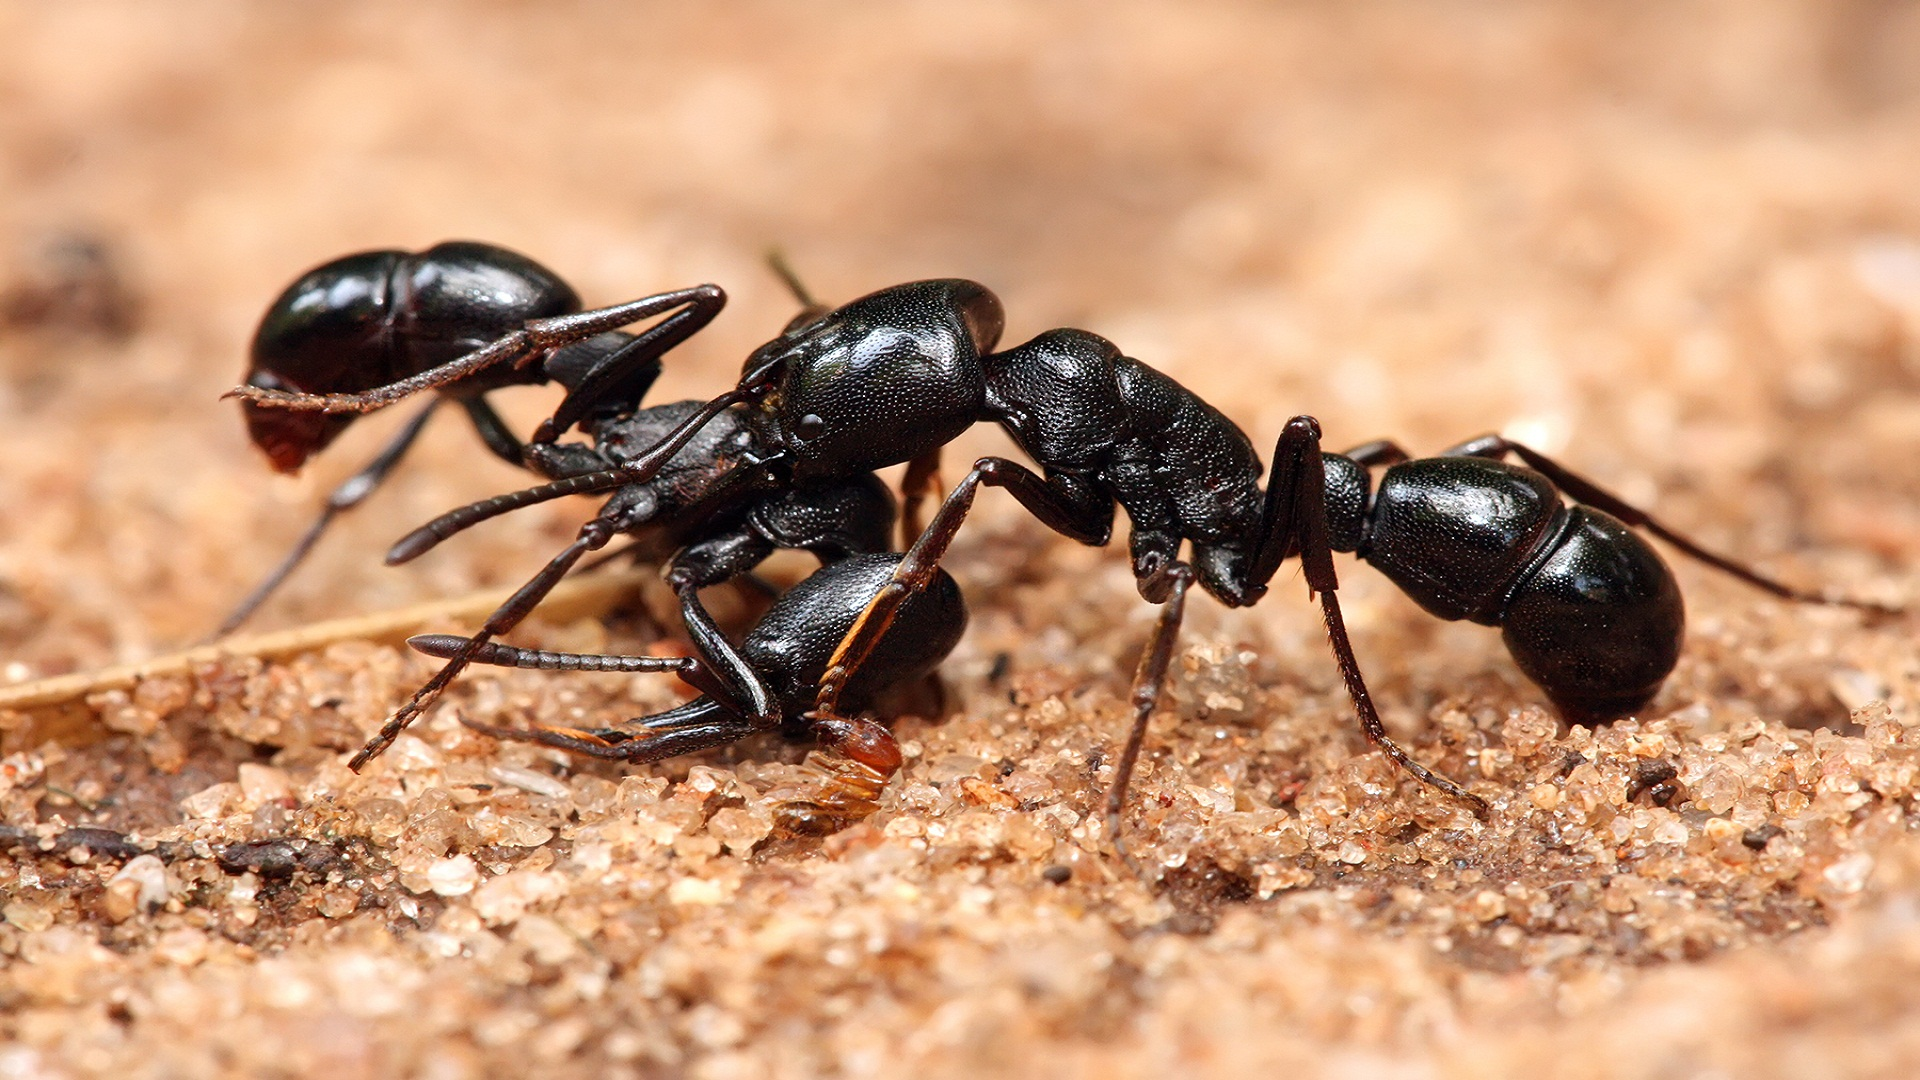 Do House Ants Bite or Sting